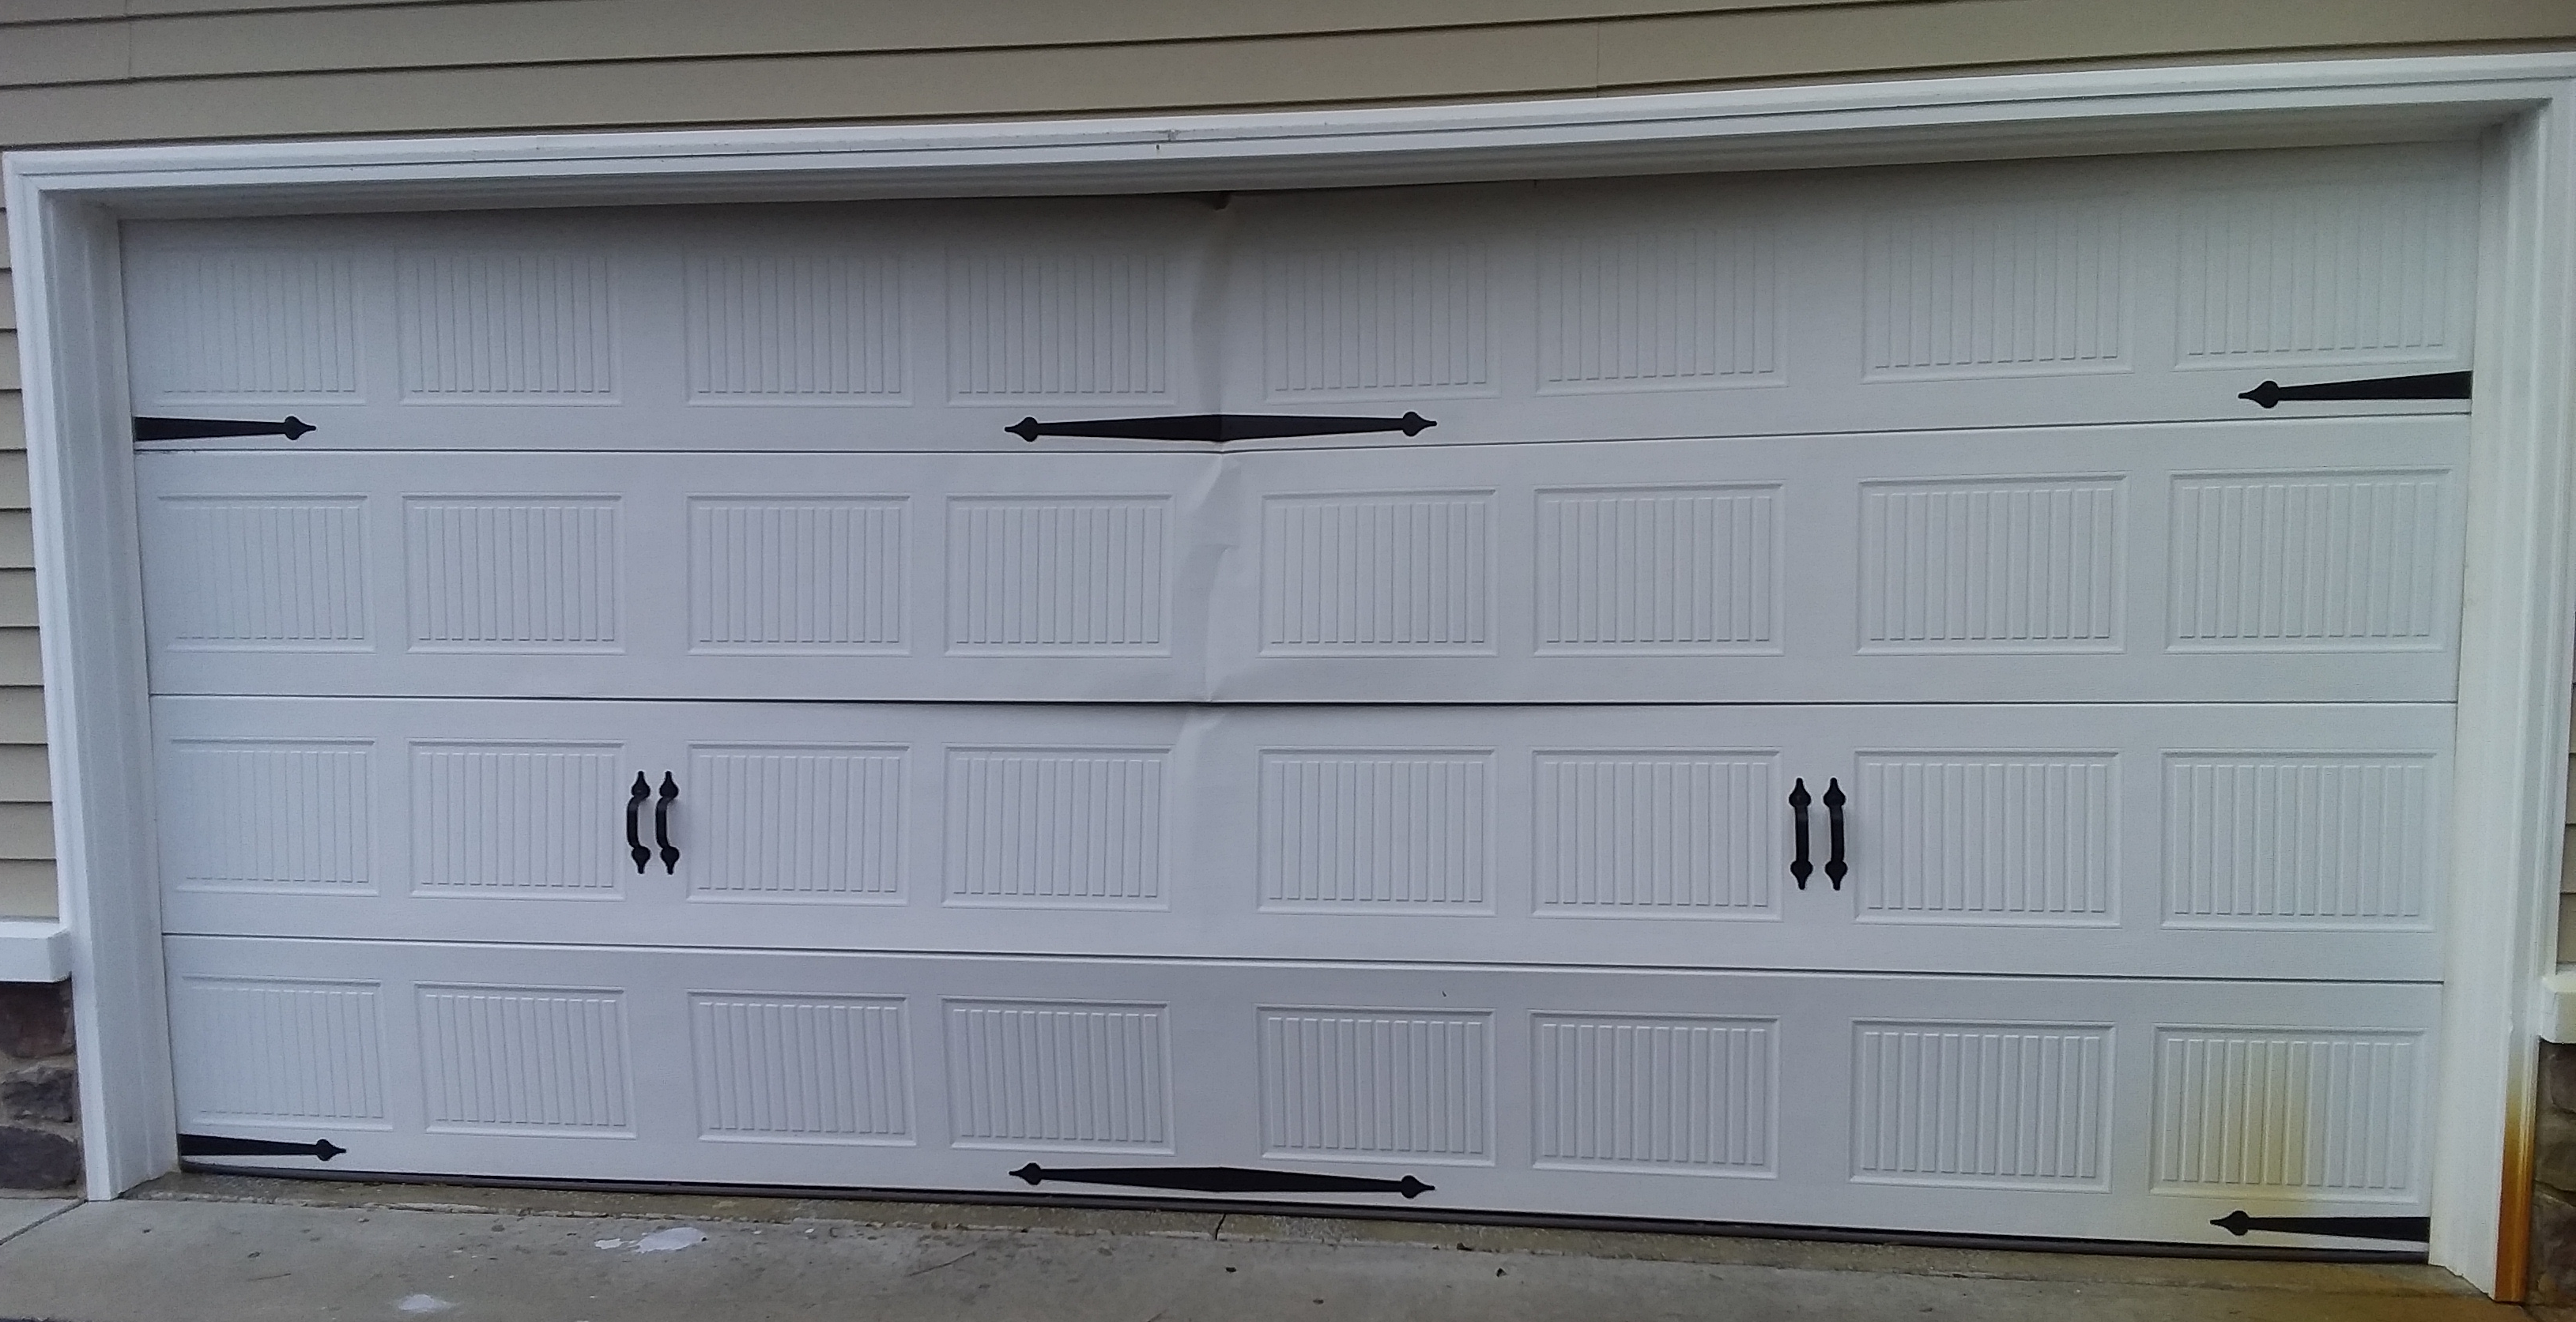 16x7 Model 5251 Stamped Carriage Style Garage Door Installed By The Richmond Store Teamappledoor In 2020 Carriage Style Garage Doors Garage Doors Door Installation